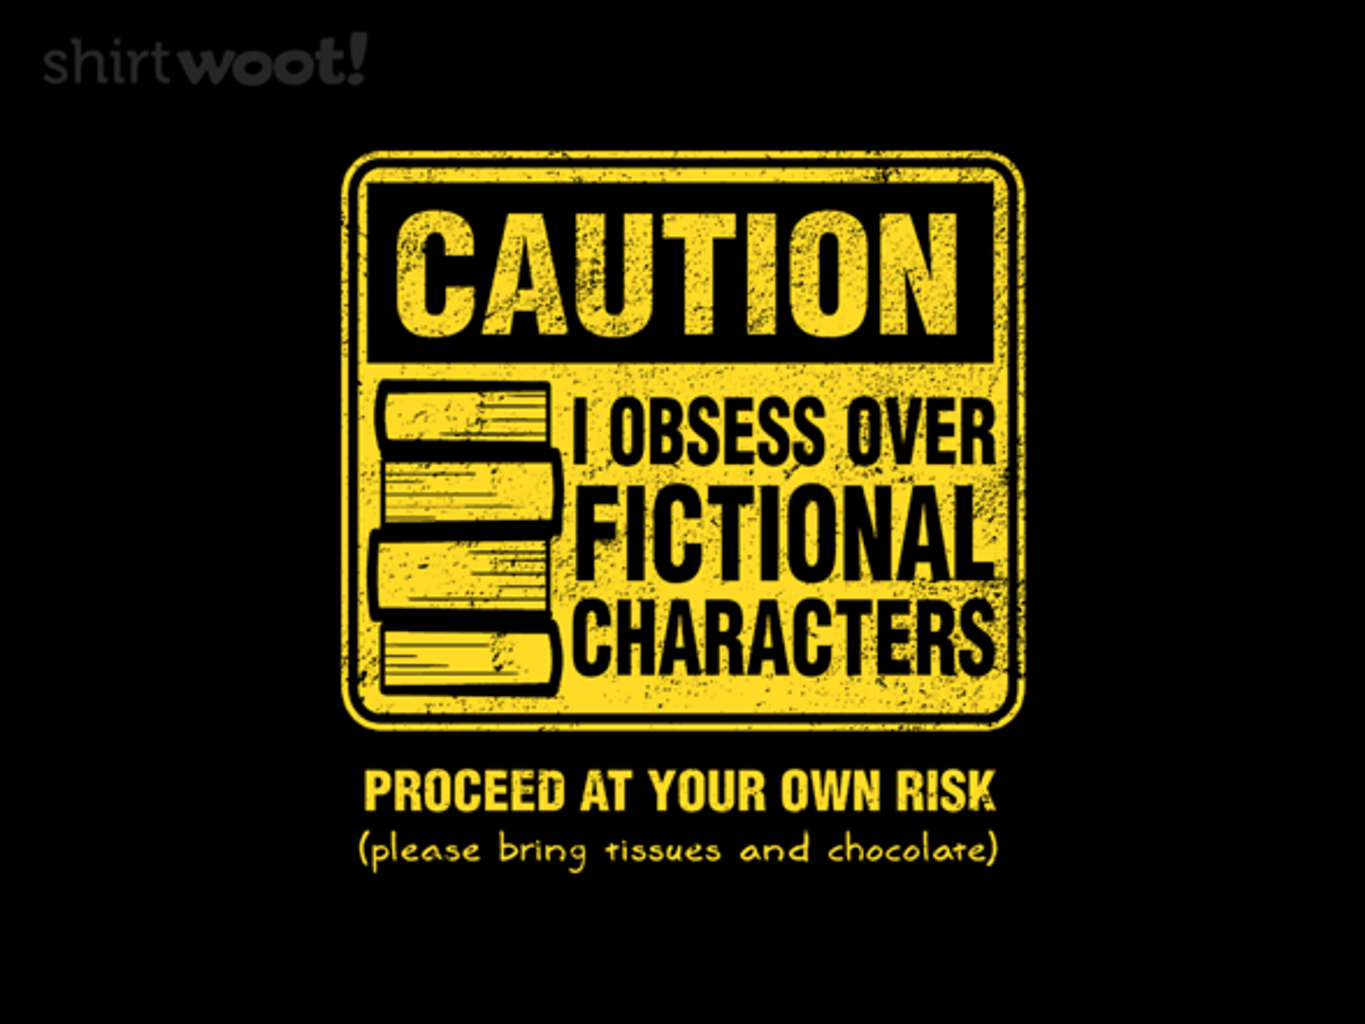 Woot!: Character Caution - $15.00 + Free shipping